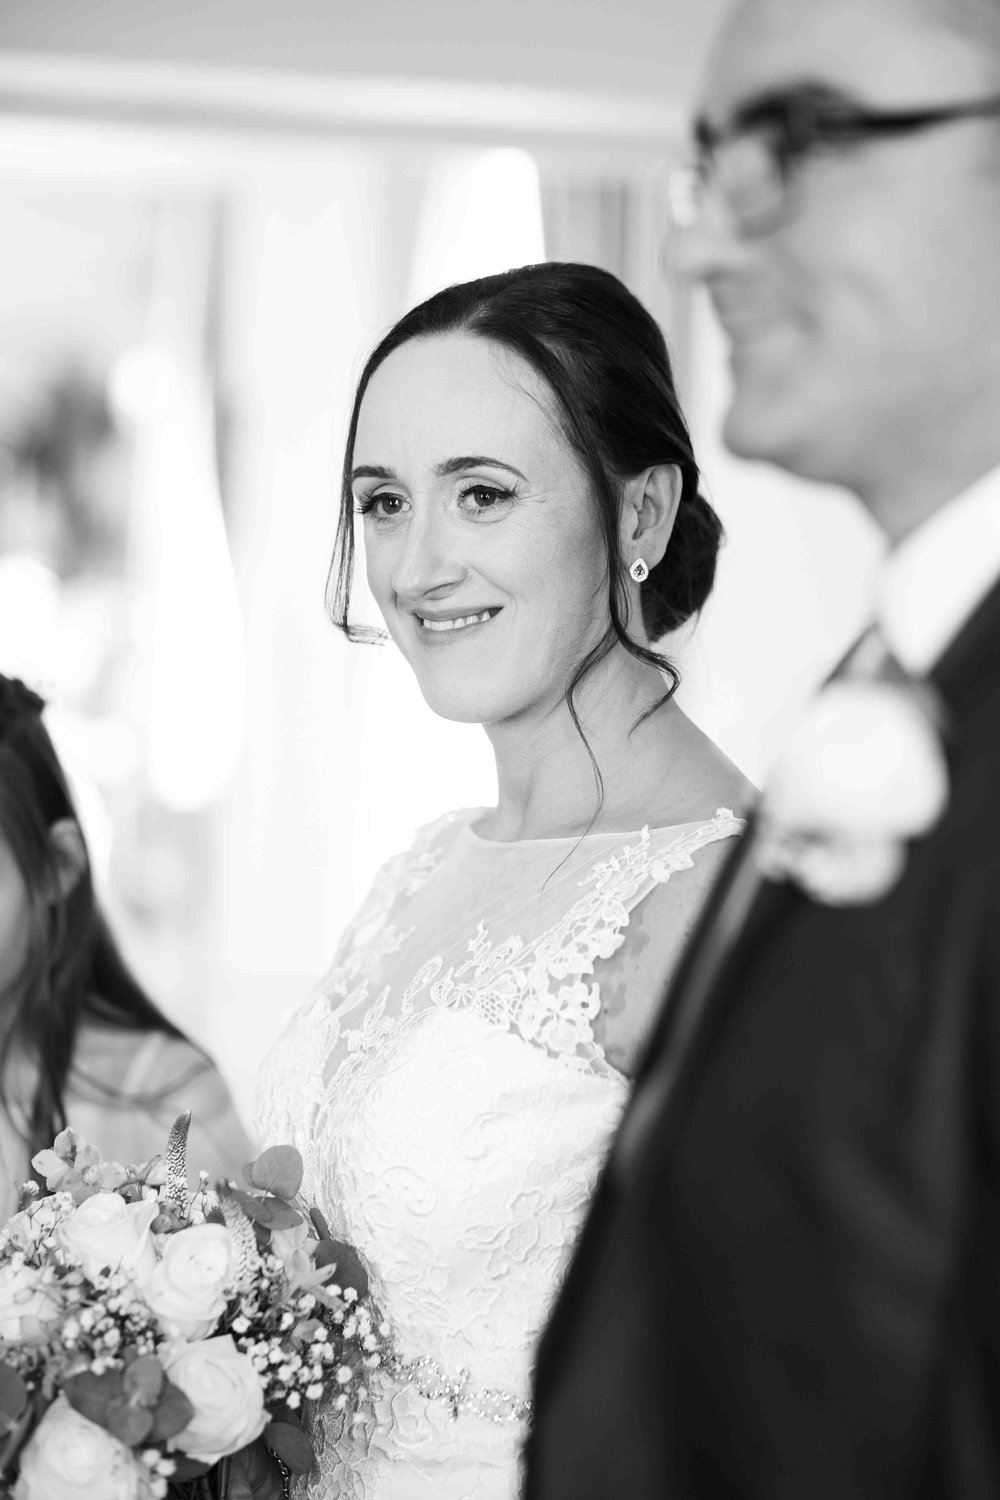 wedding-photos-willenhall-wedding-photographer-wolverhampton-wedding-photographer-west-midlands-wedding-photographer-birmingham-bride-vows-smile.jpg